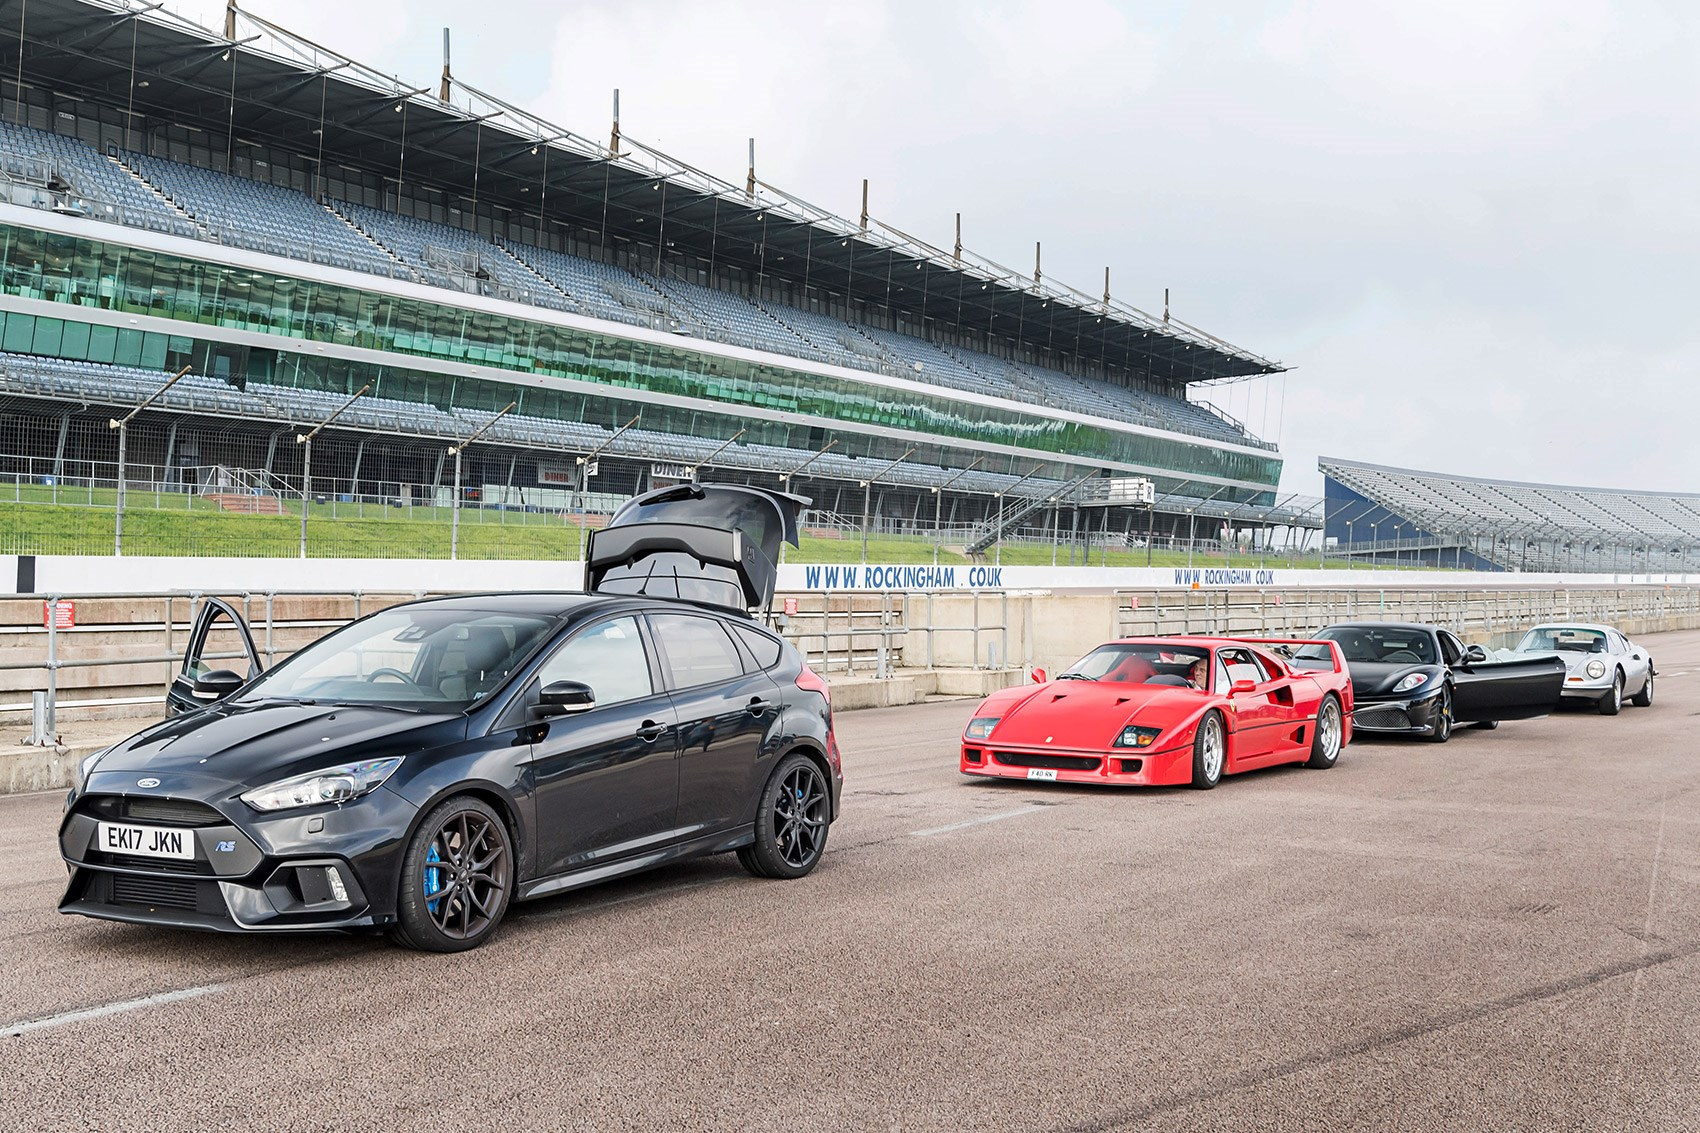 Ford Focus Rs S 345bhp Was Supercar Territory 25 Years Ago